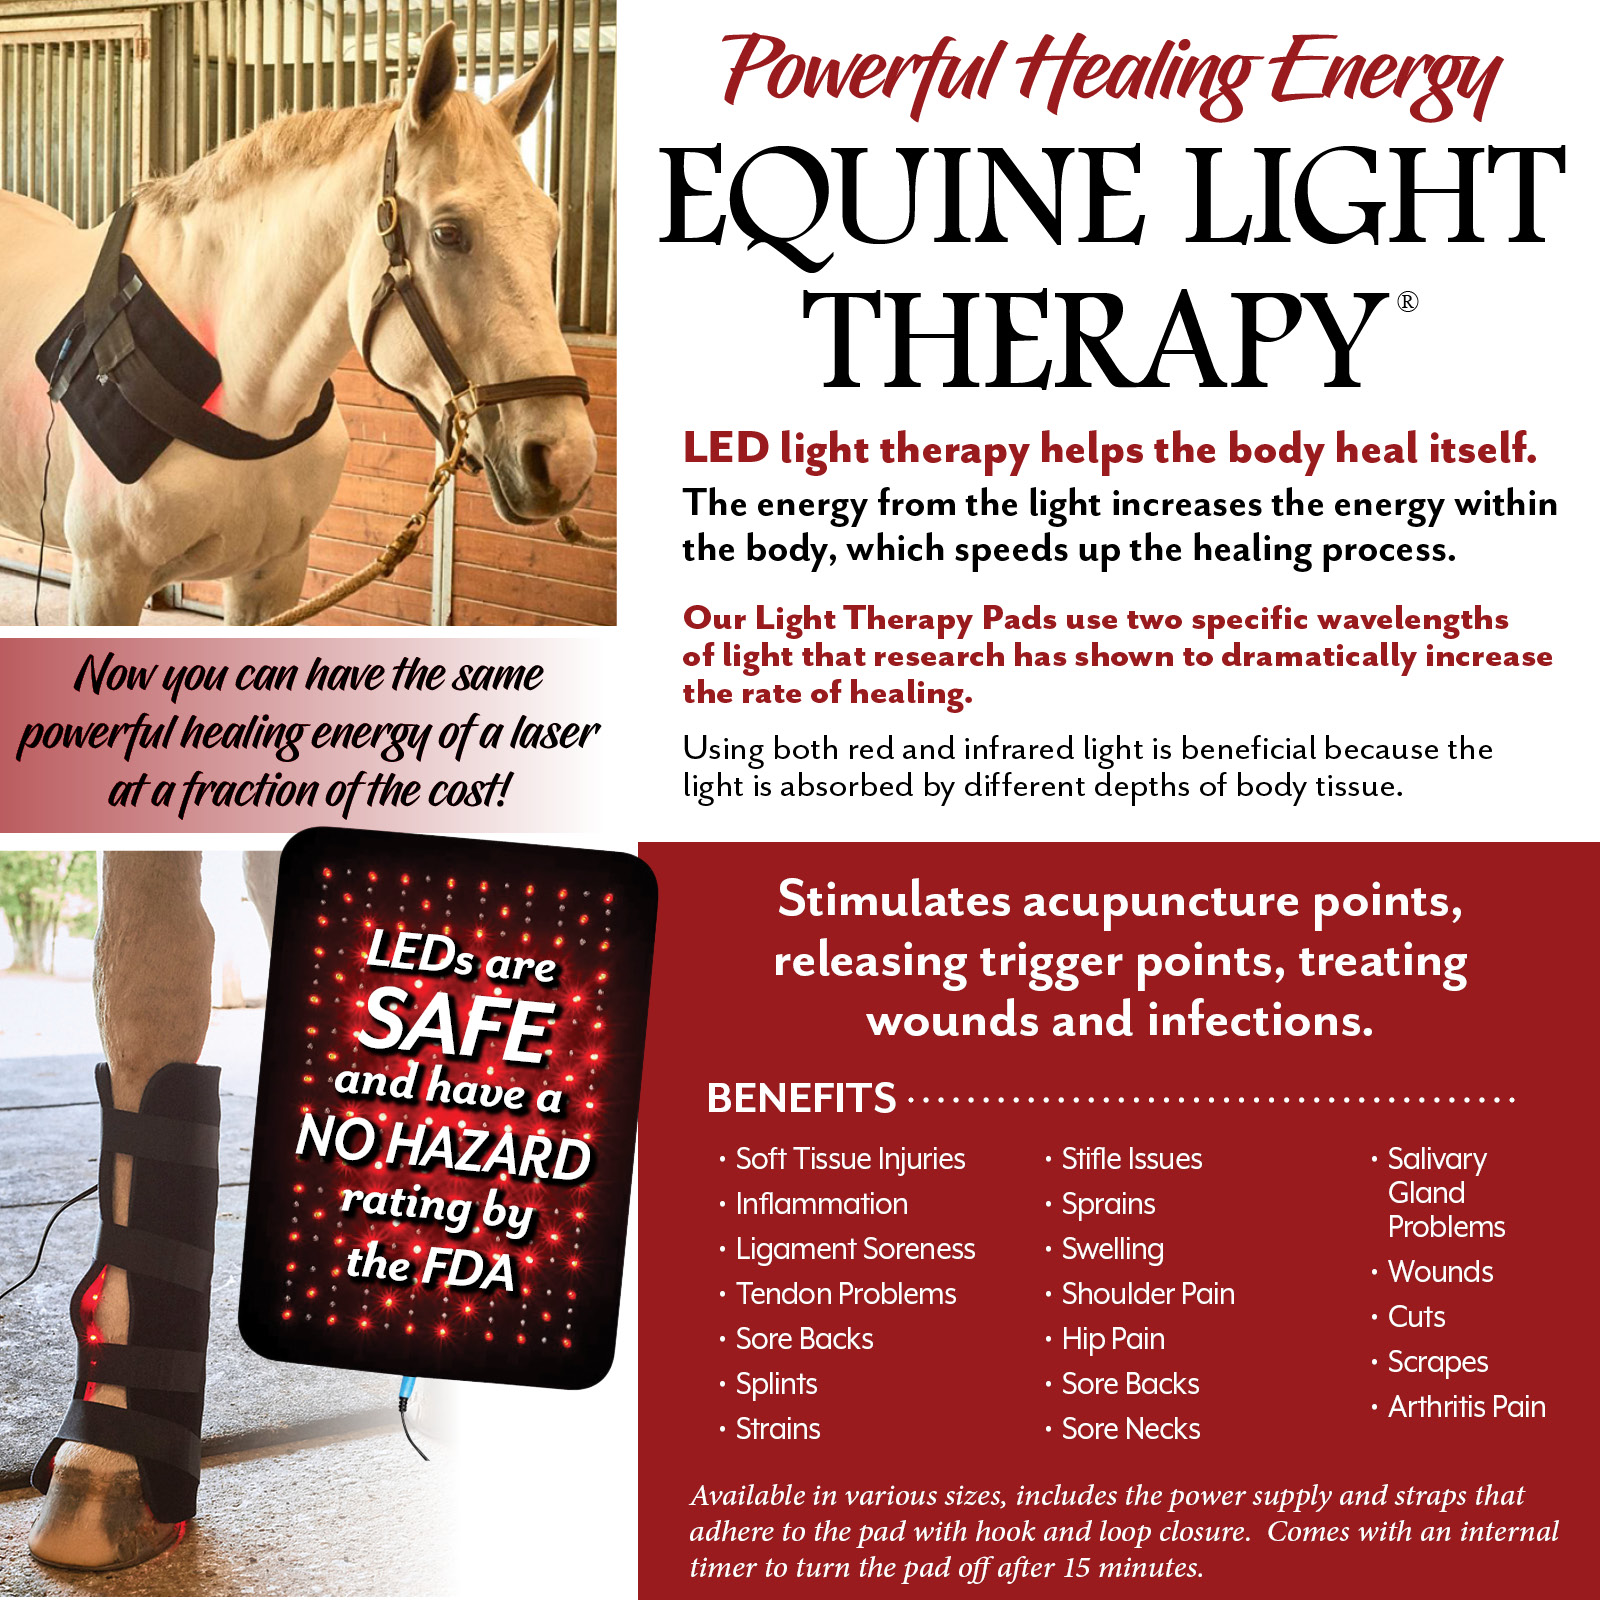 Equine Light Therapy® More Information